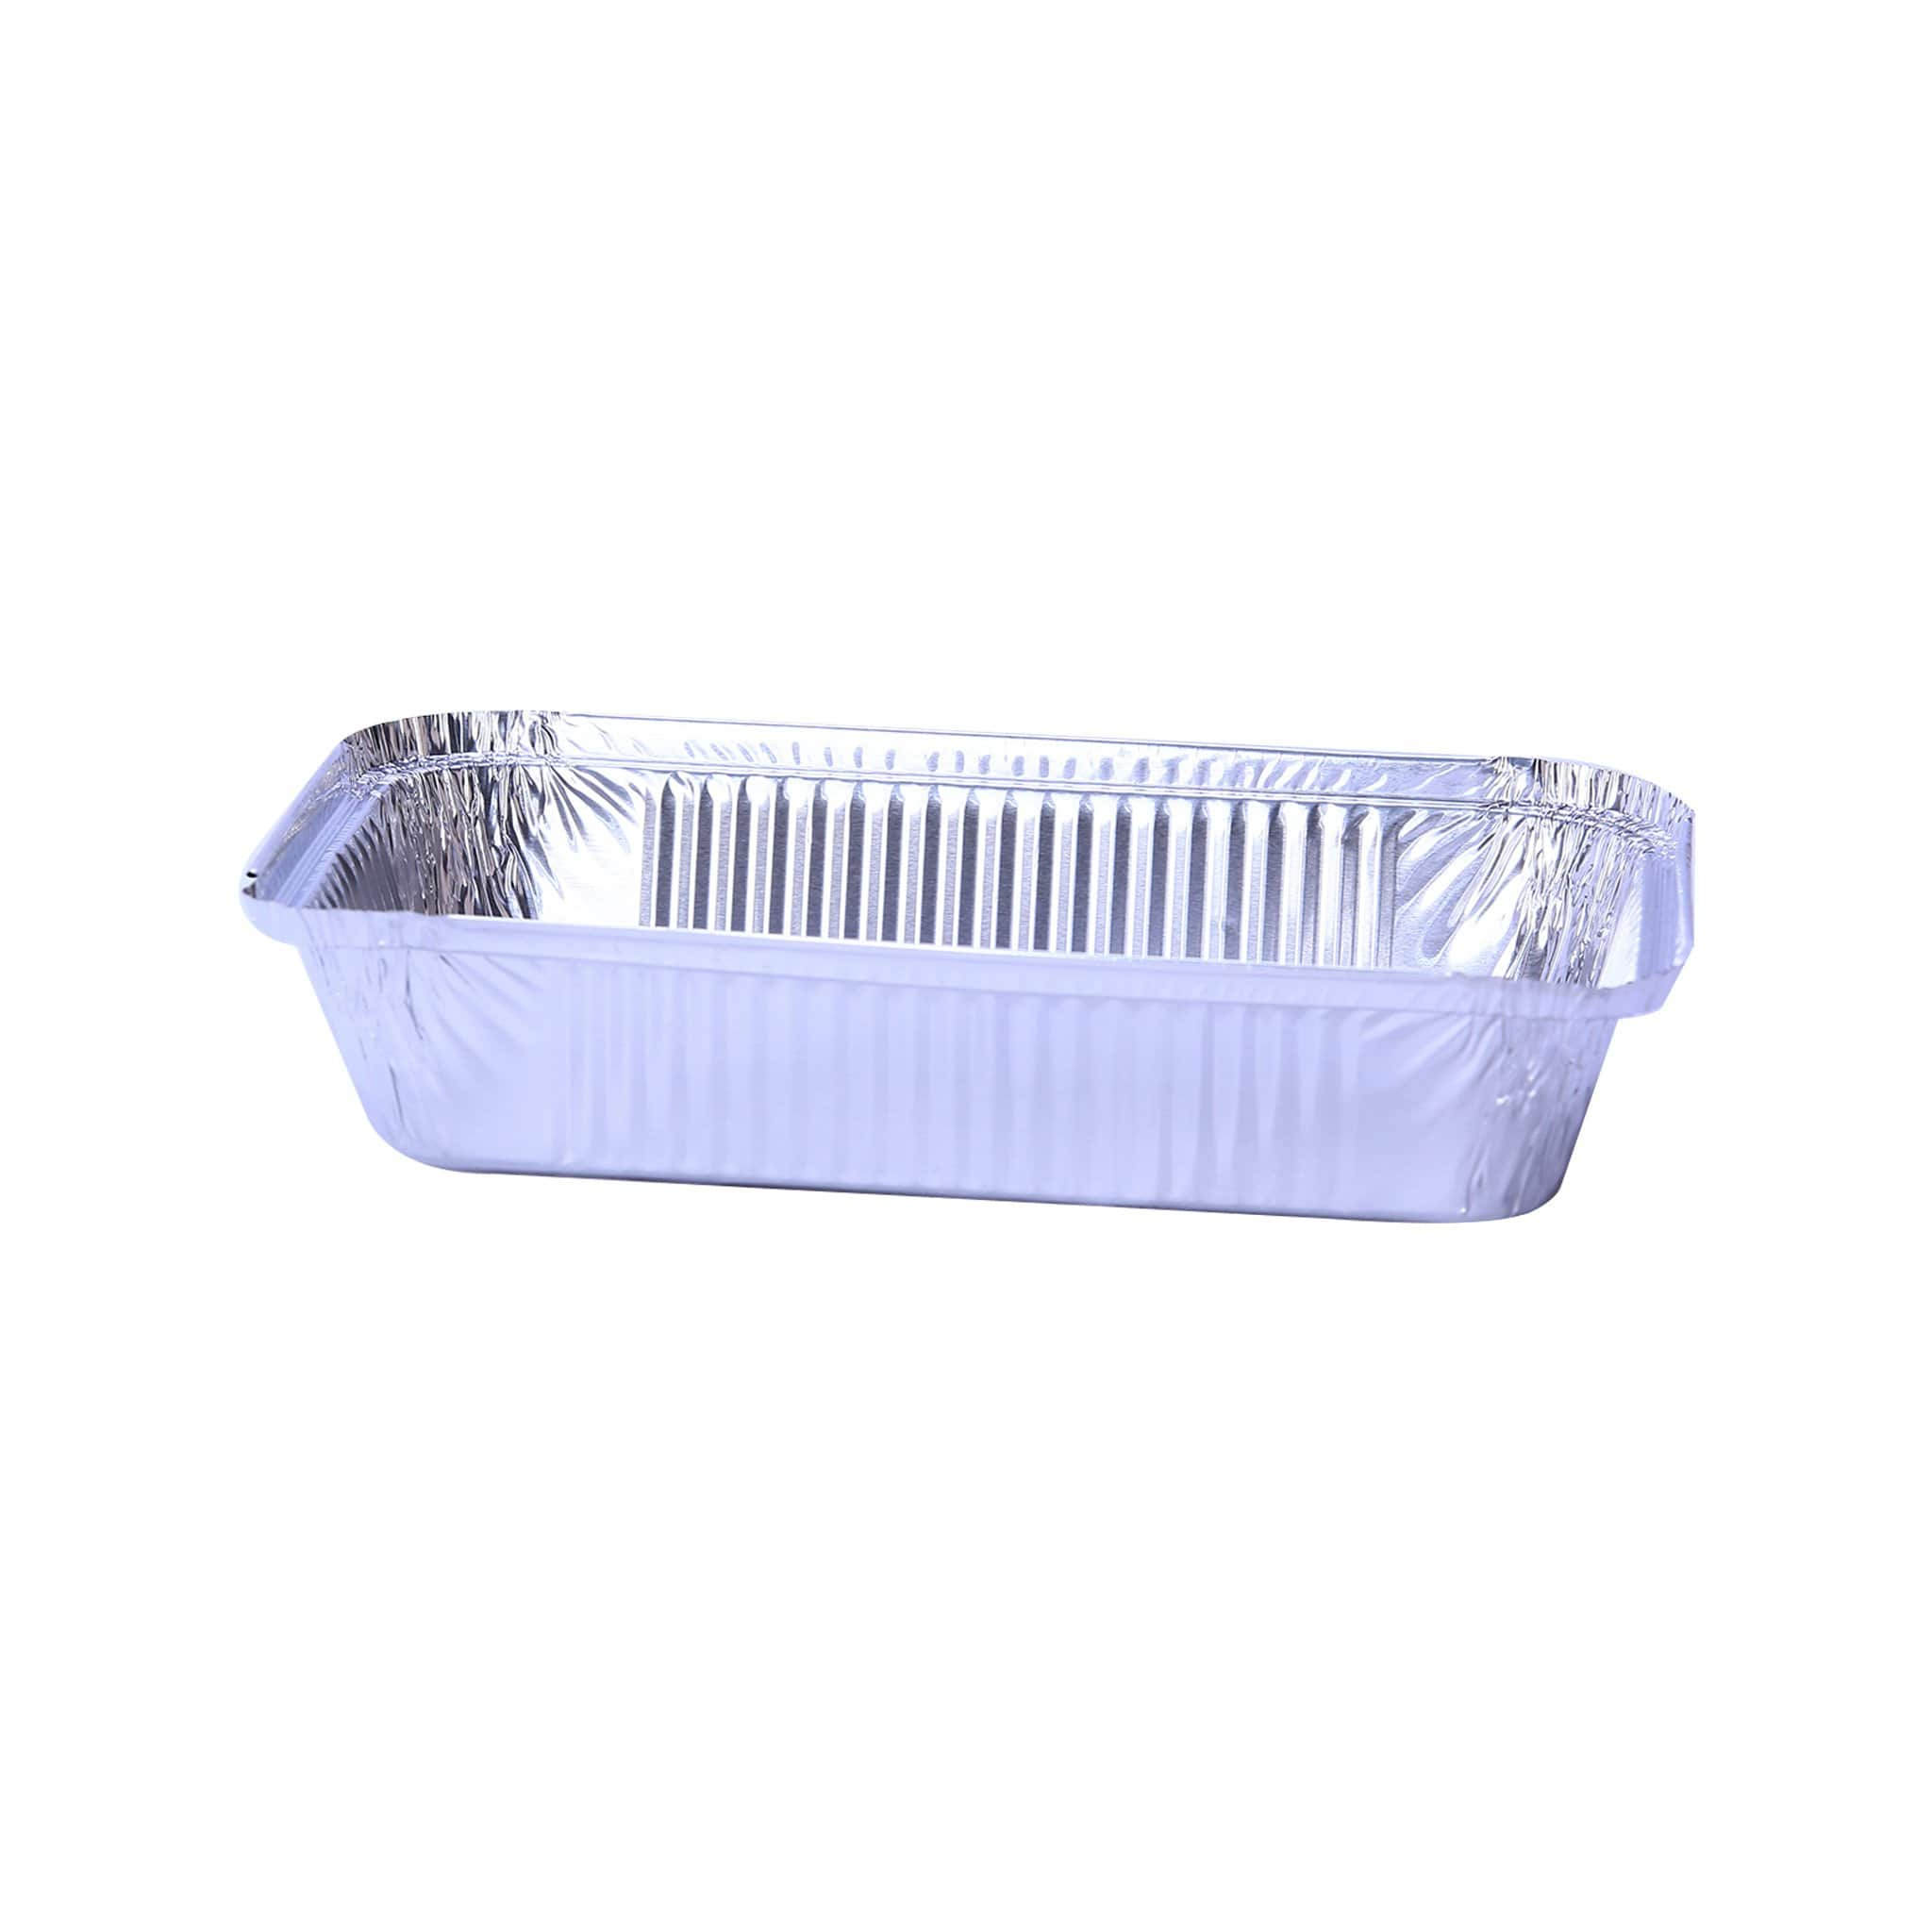 Hotpack | Aluminium Container Base Only 210x140x38mm | 1000 Pieces